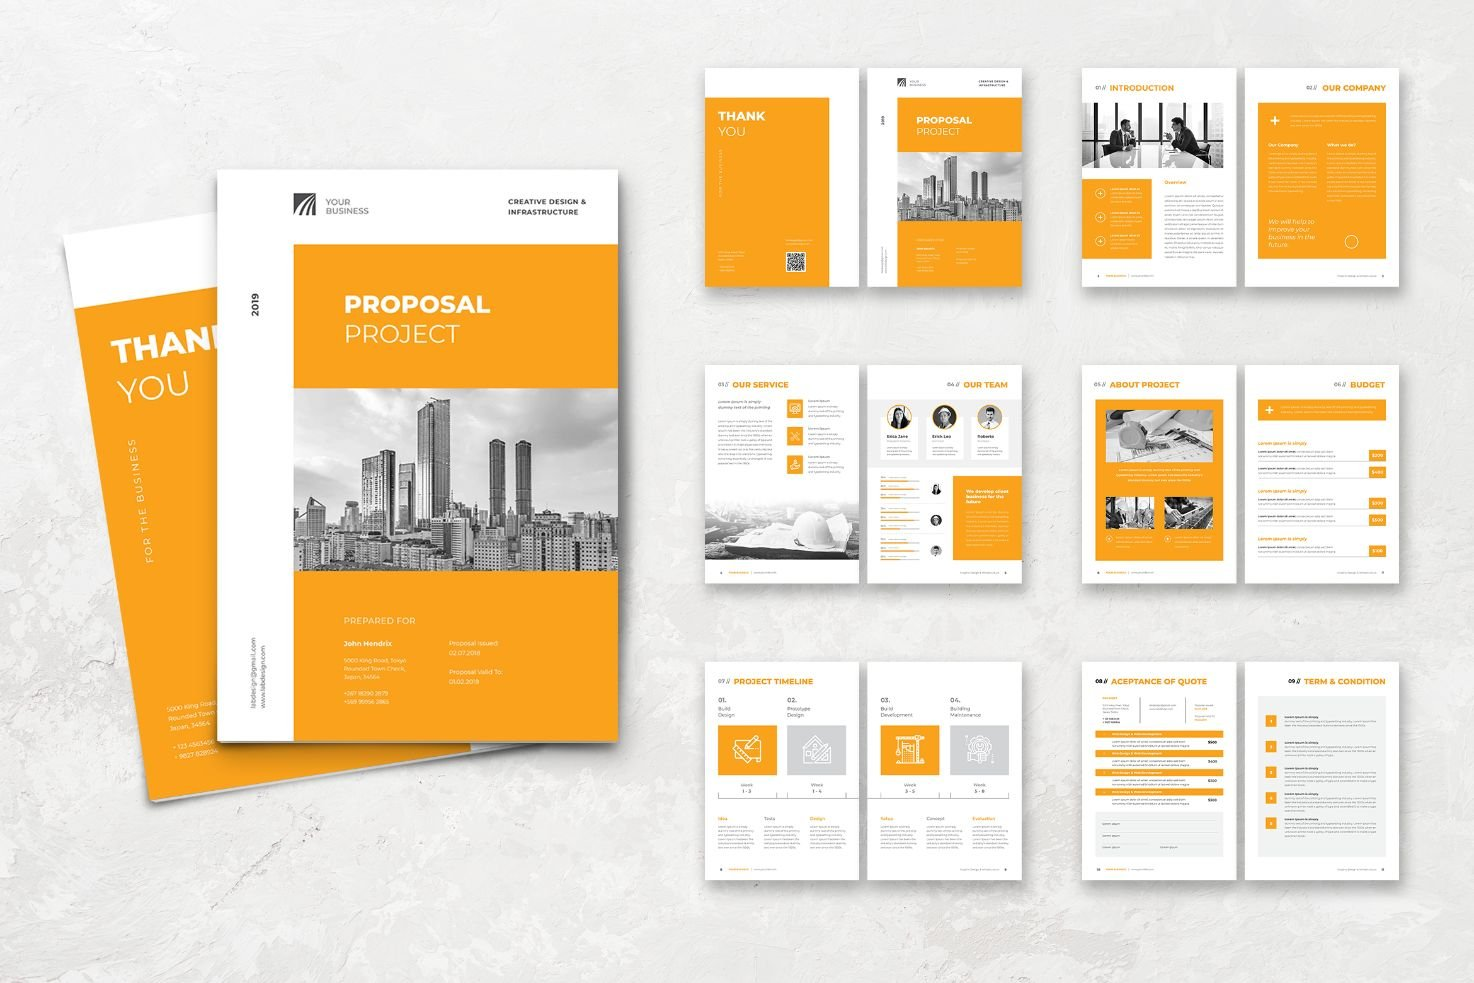 Proposal Business Development Services Corporate Identity Template